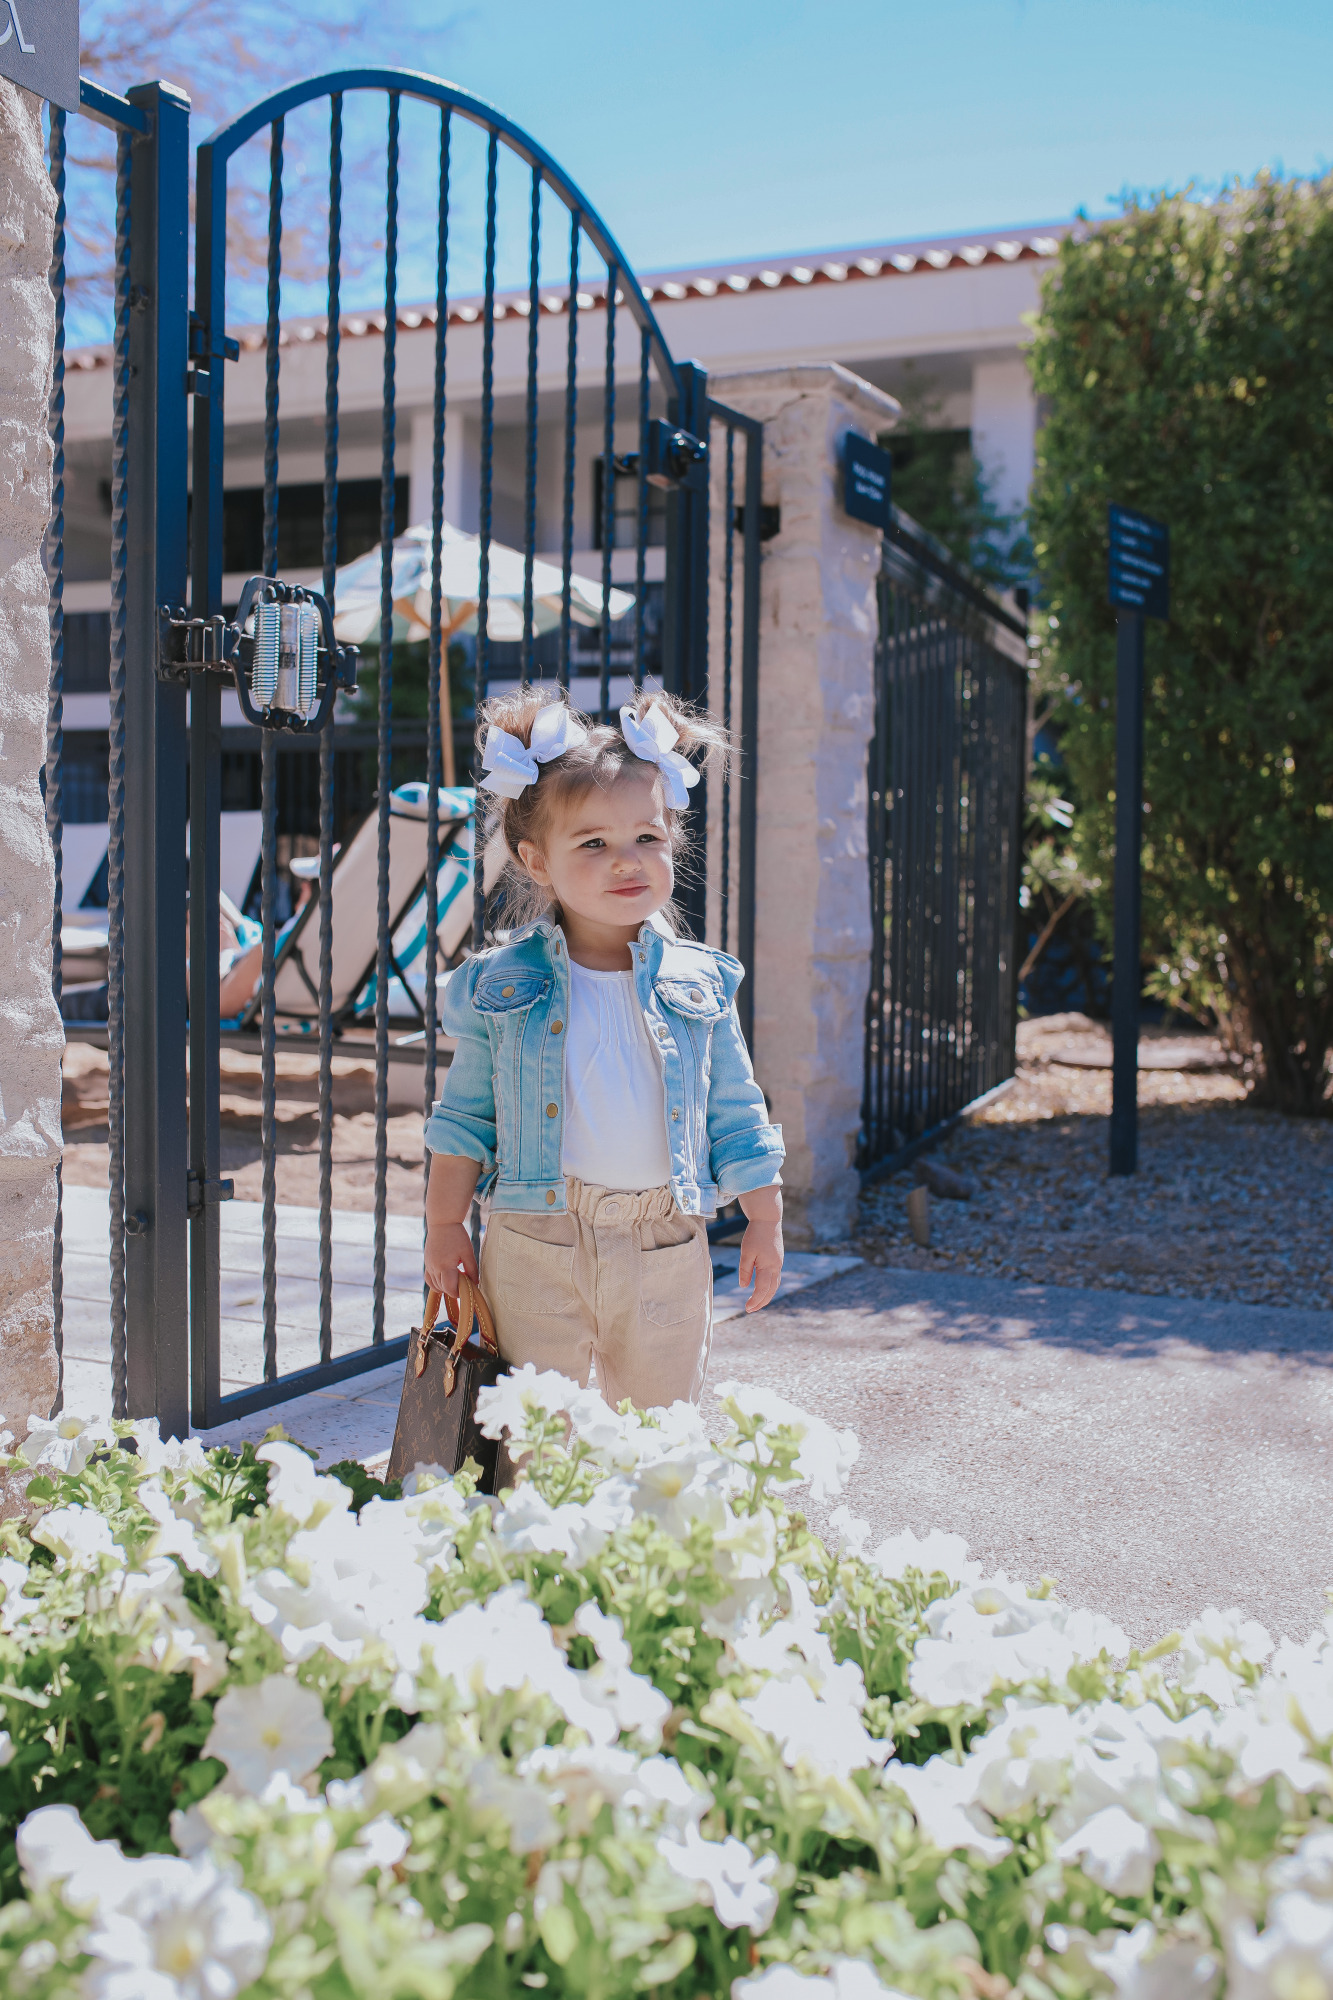 Mom Jeans by popular US fashion blog, The Sweetest Thing: image of a little girl standing by a wrought iron gate in Scottsdale, Arizona and wearing two white hair bows, jean jacket, white shirt, tan pants and holding a mini Louis Vuitton purse.